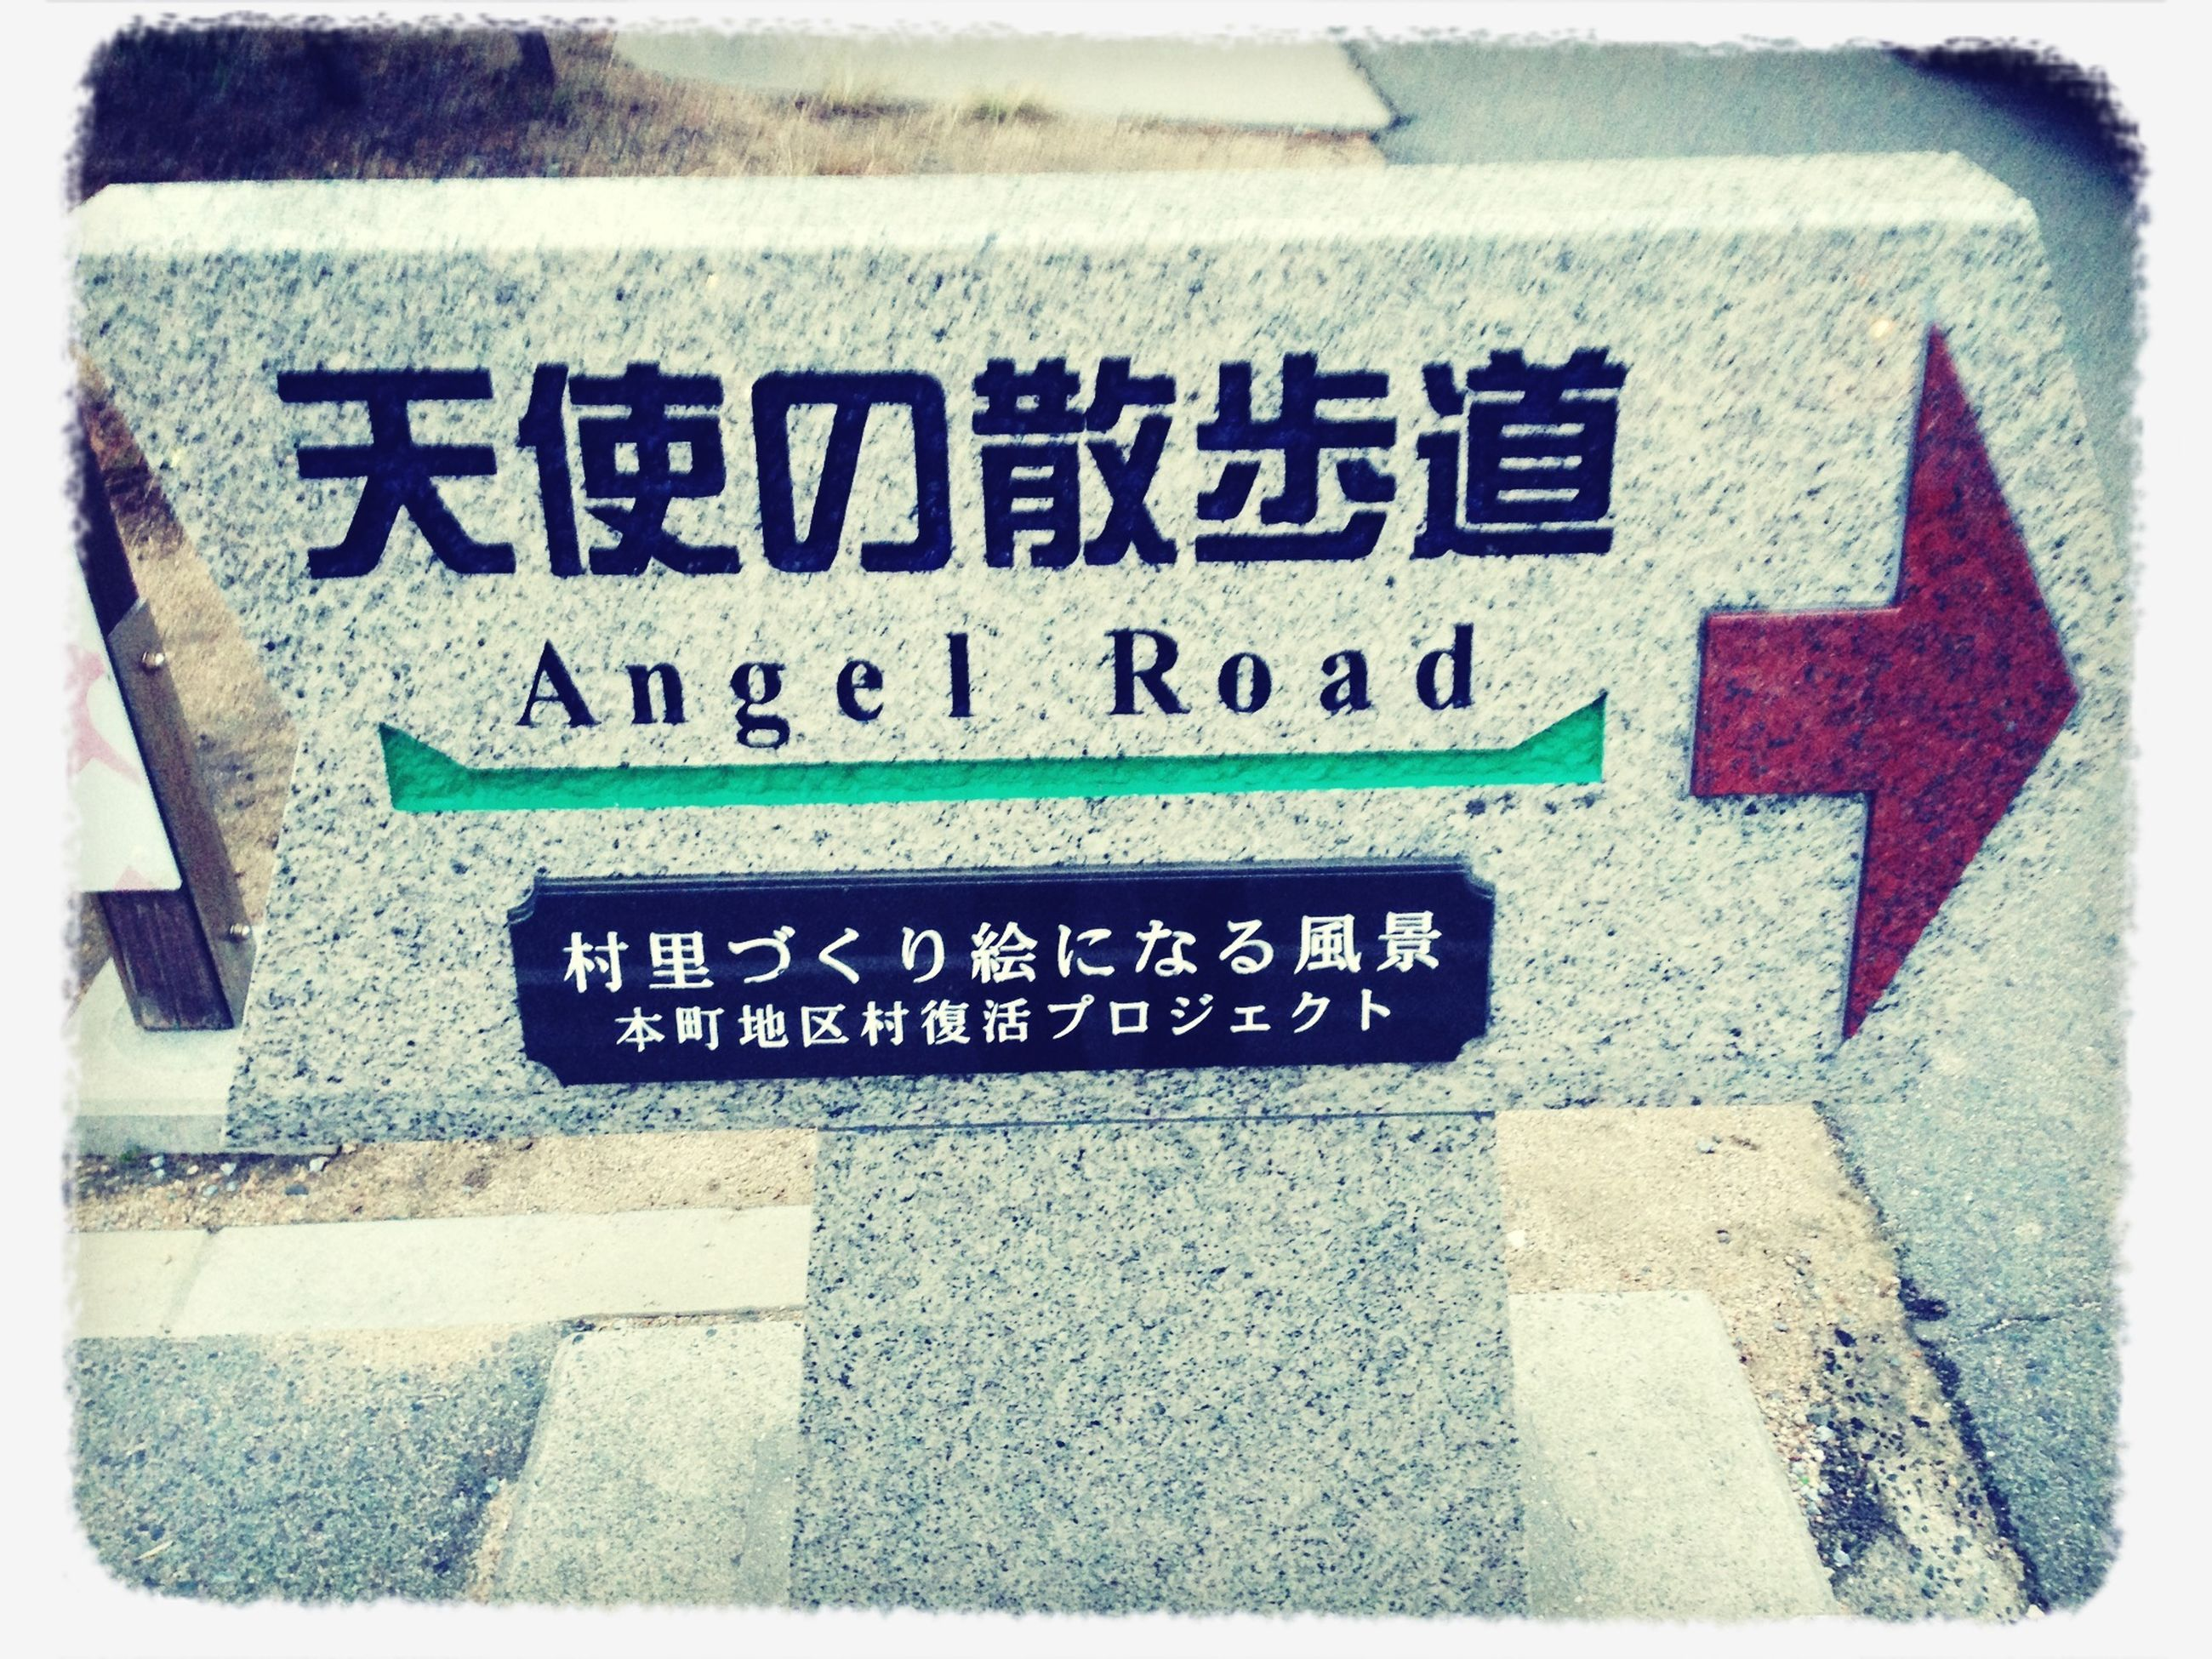 text, western script, communication, guidance, information, sign, capital letter, non-western script, transfer print, information sign, street, arrow symbol, close-up, road sign, direction, road, directional sign, day, auto post production filter, outdoors